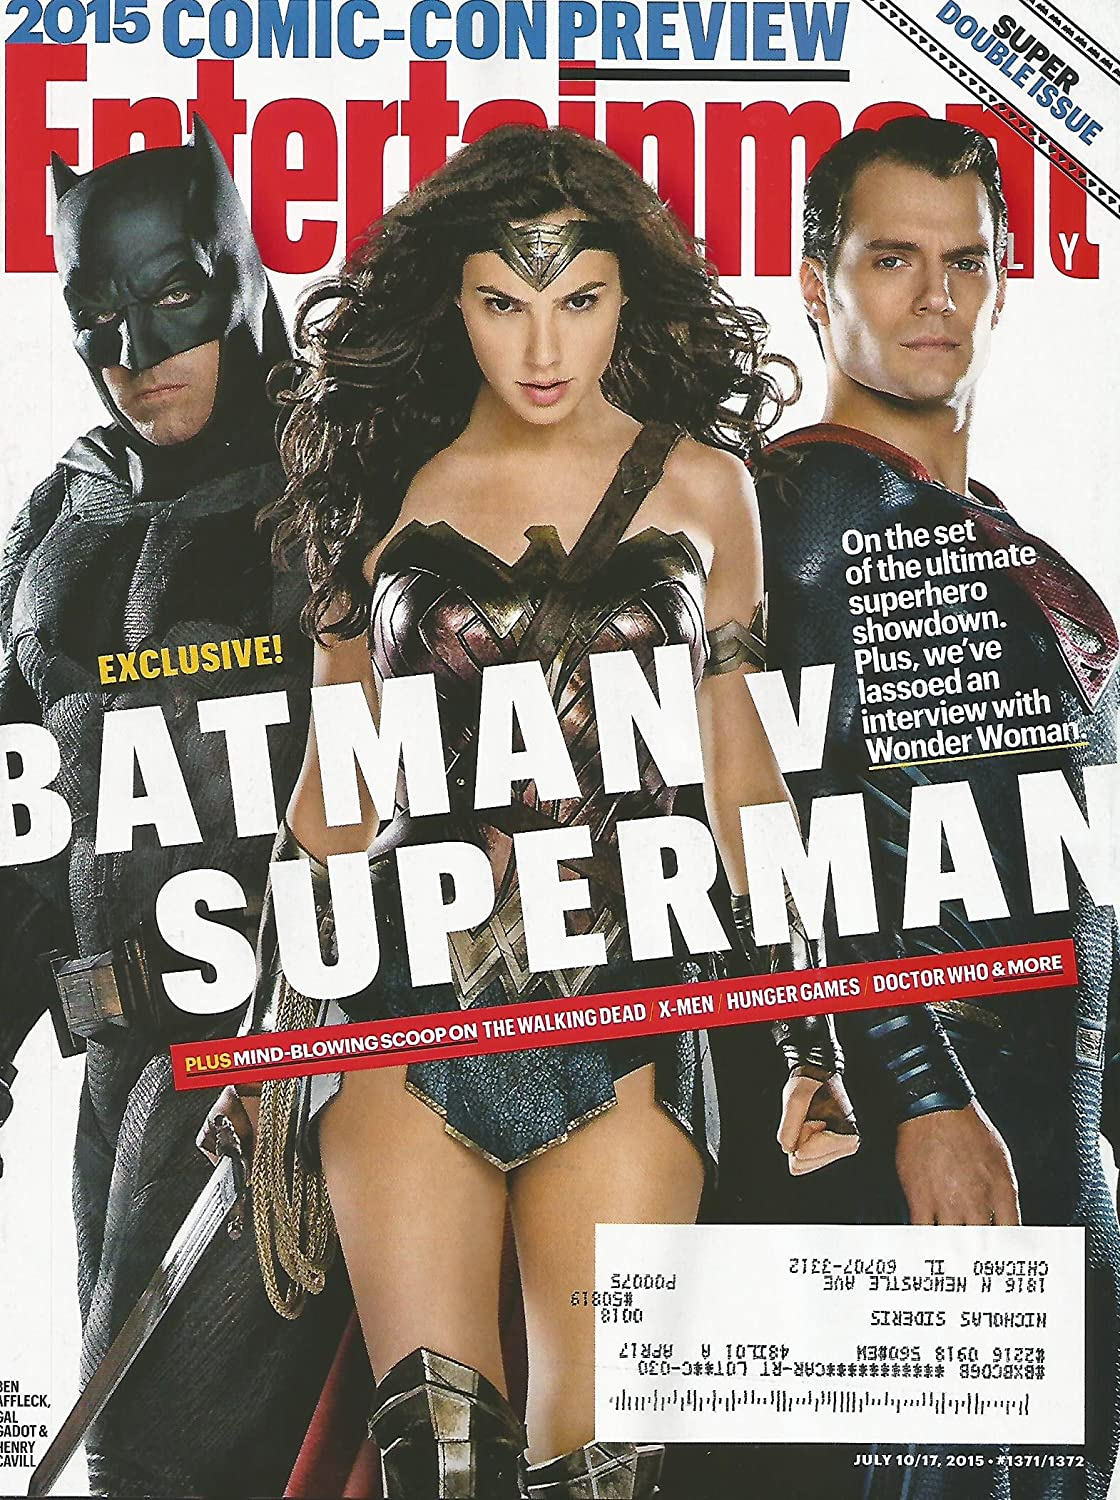 Entertainment Weekly July 17, 2015